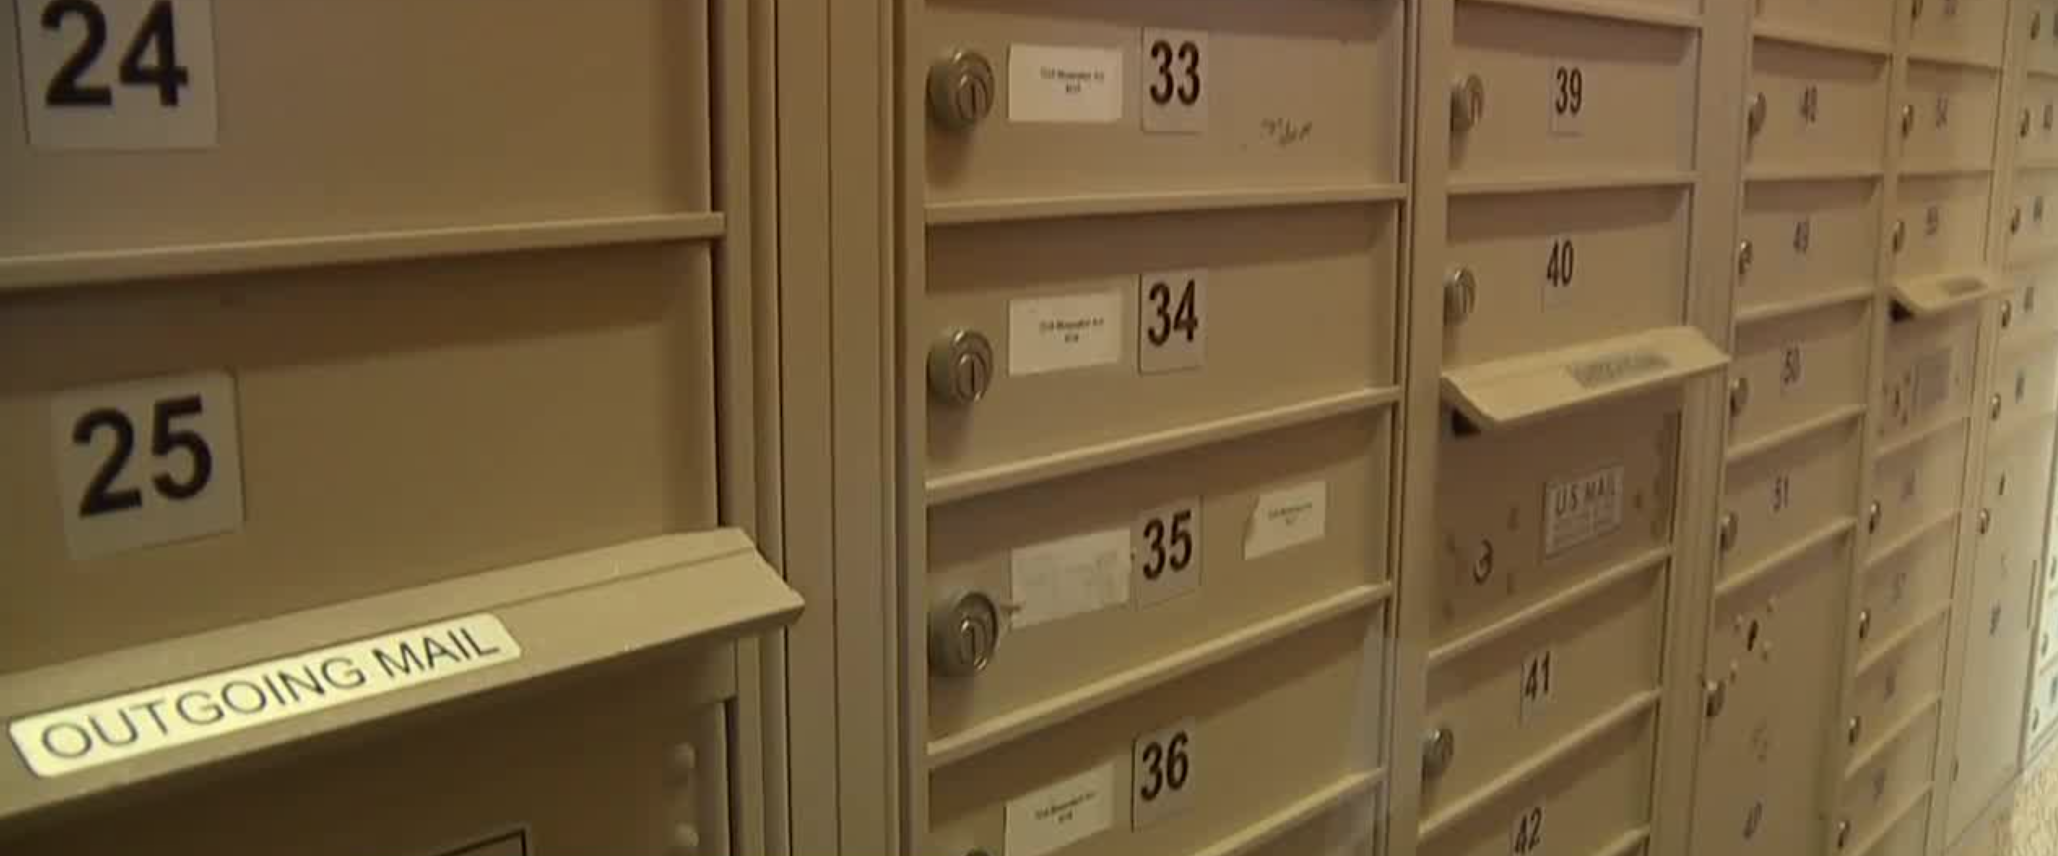 USPS investigating mail theft in Las Vegas community